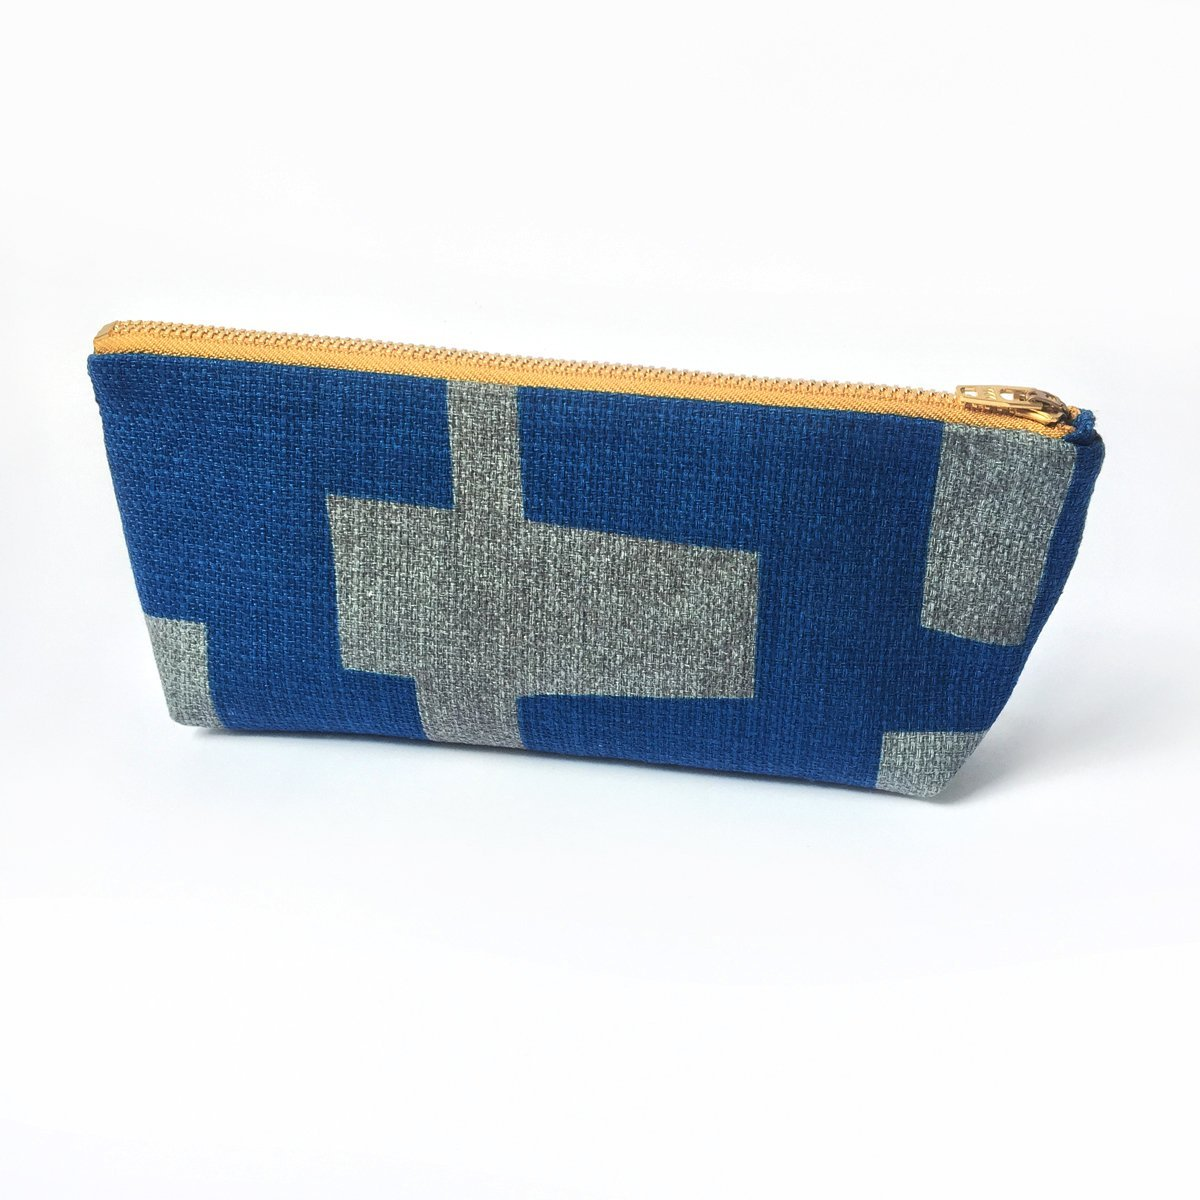 Pencil Case, Minimalist, Travel Gift, Pencil Pouch, Unisex - Blue Grey